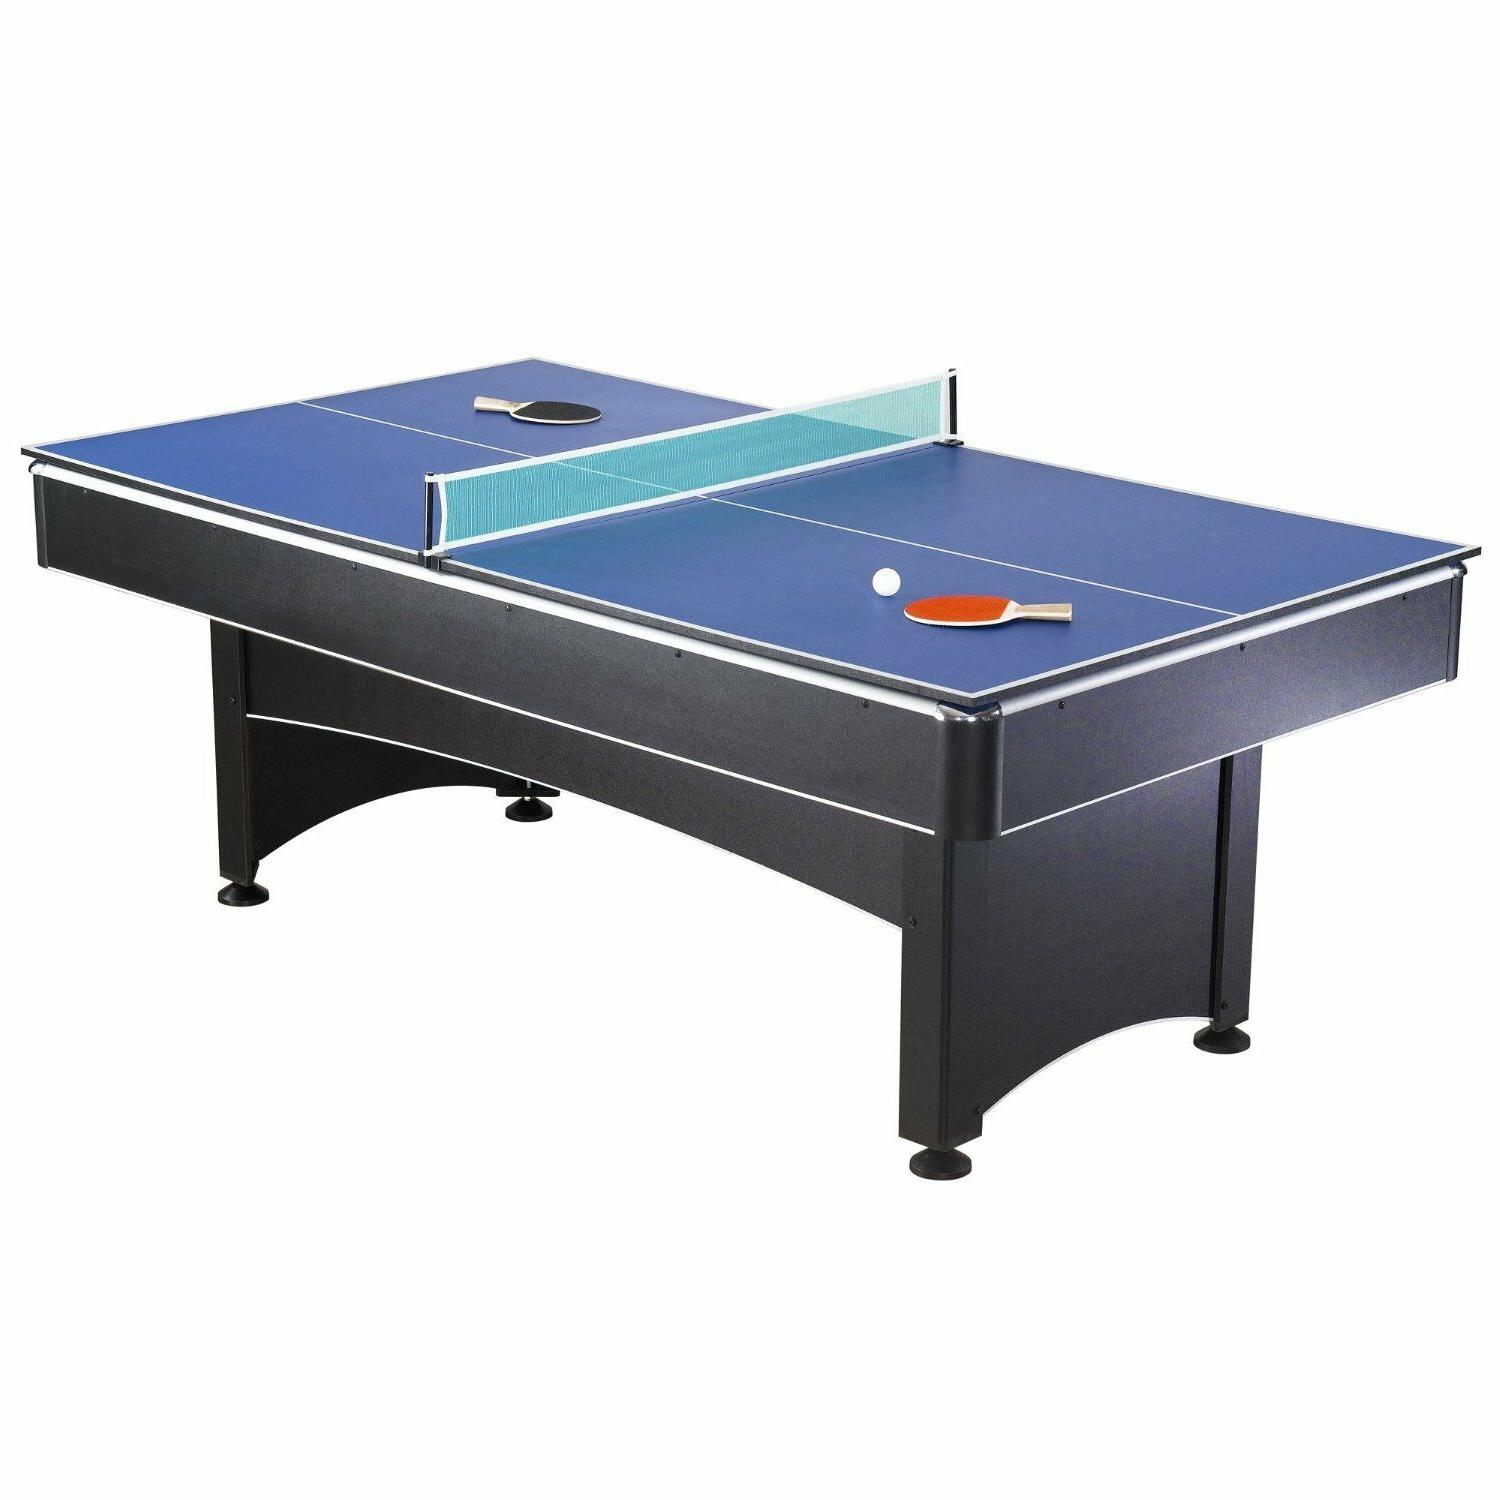 Hathaway Pool Table & Tennis &